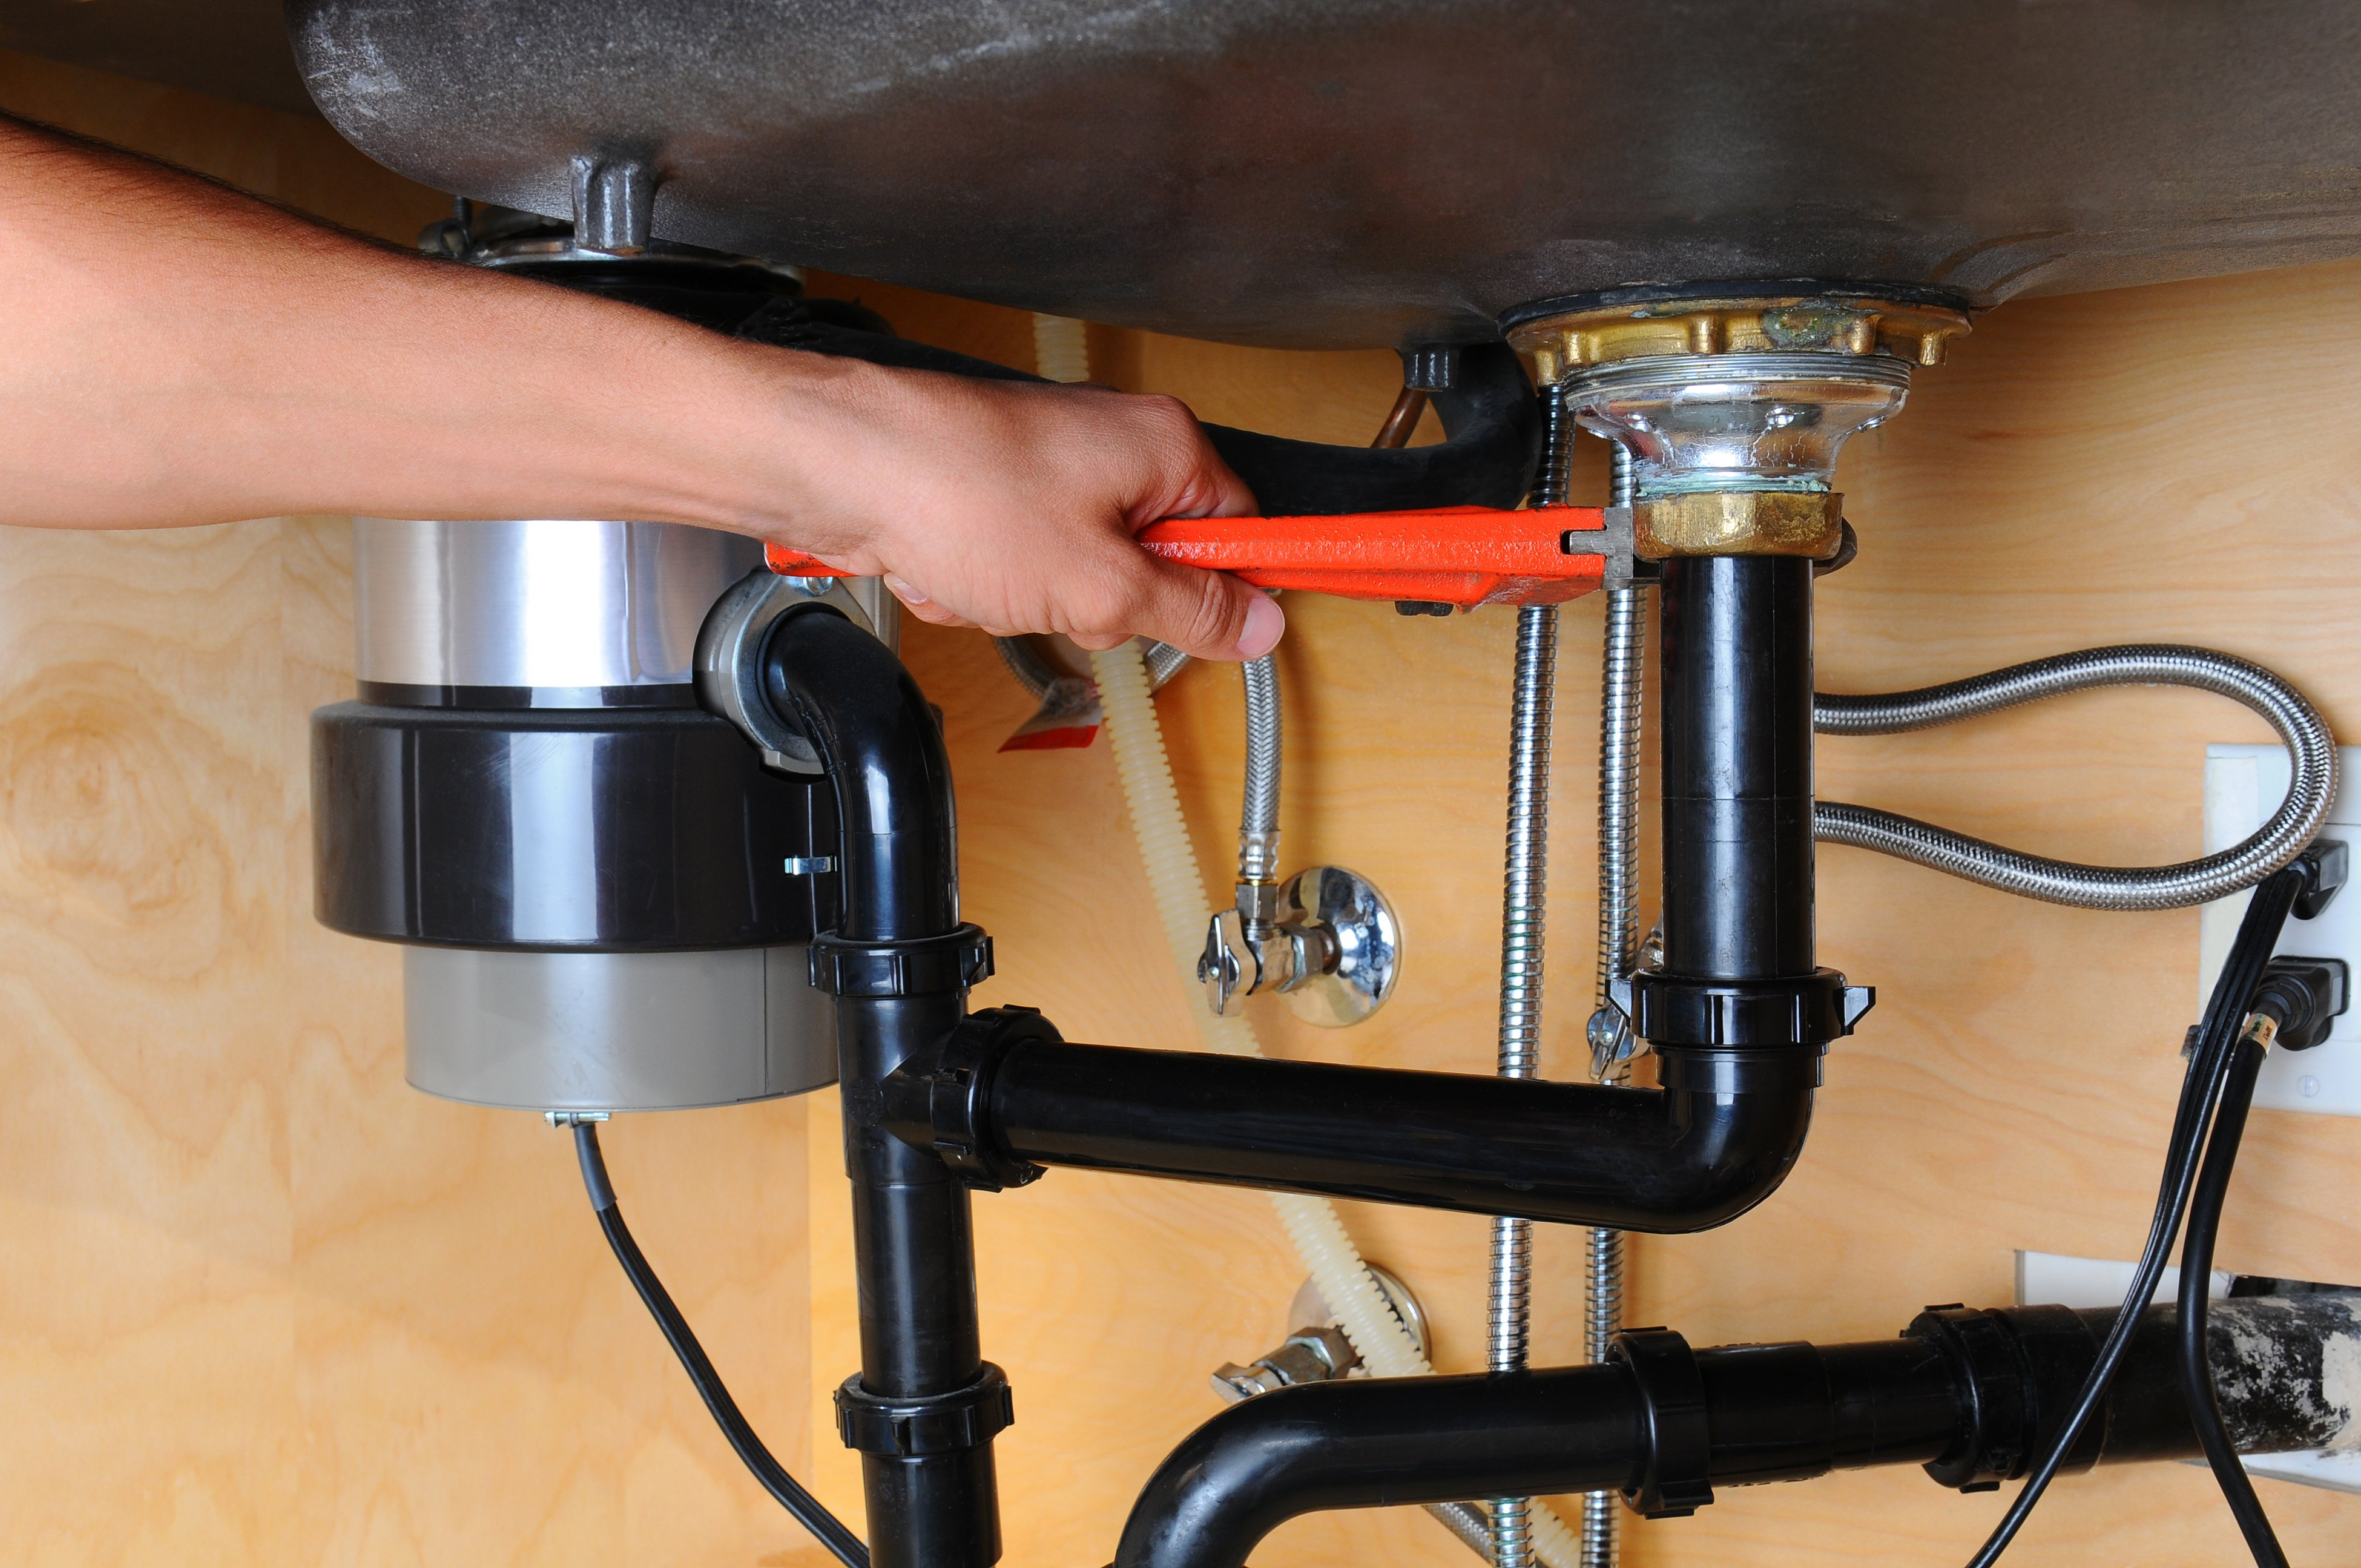 how to unclog a kitchen sink that has garbage disposal unclog kitchen sink Fix Clogged Kitchen Sink Garbage Disposal Best Ideas